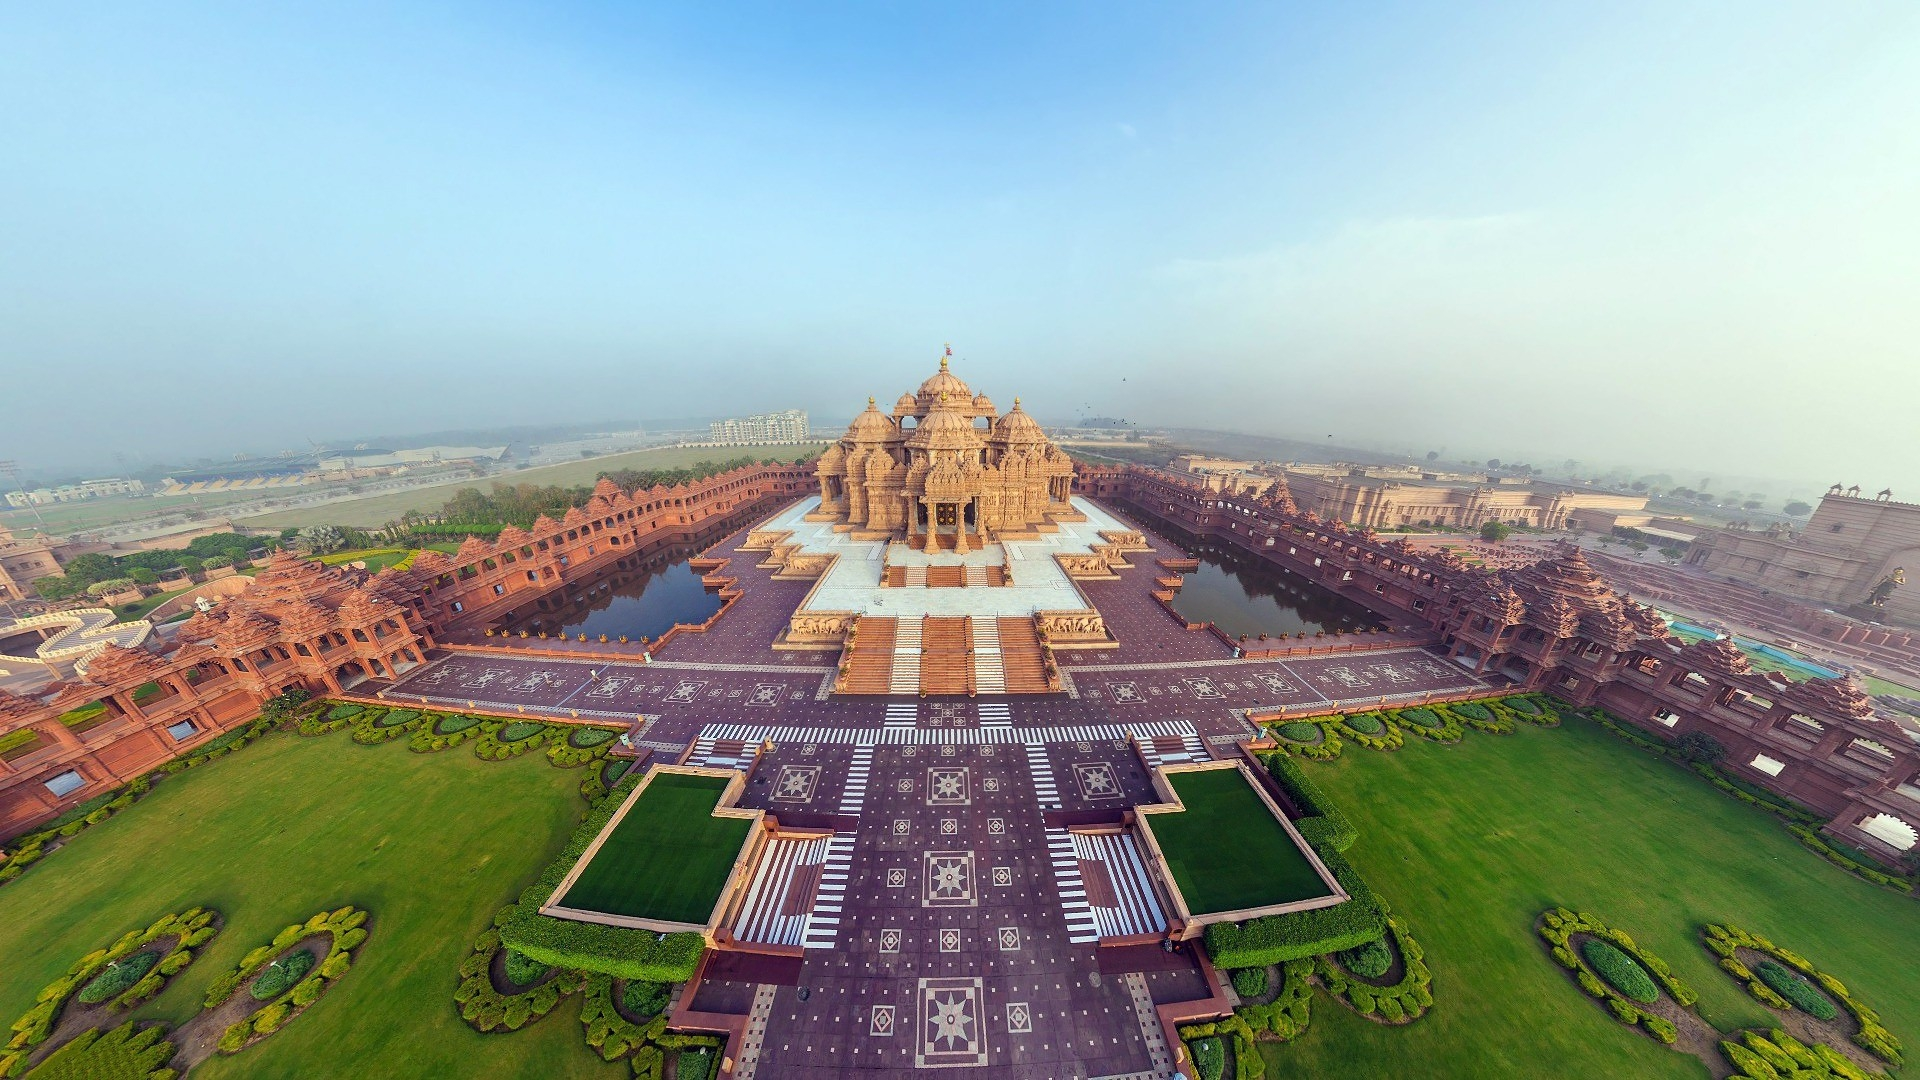 Download wallpaper 1920x1080 india akshardham temple beautiful india akshardham temple beautiful thecheapjerseys